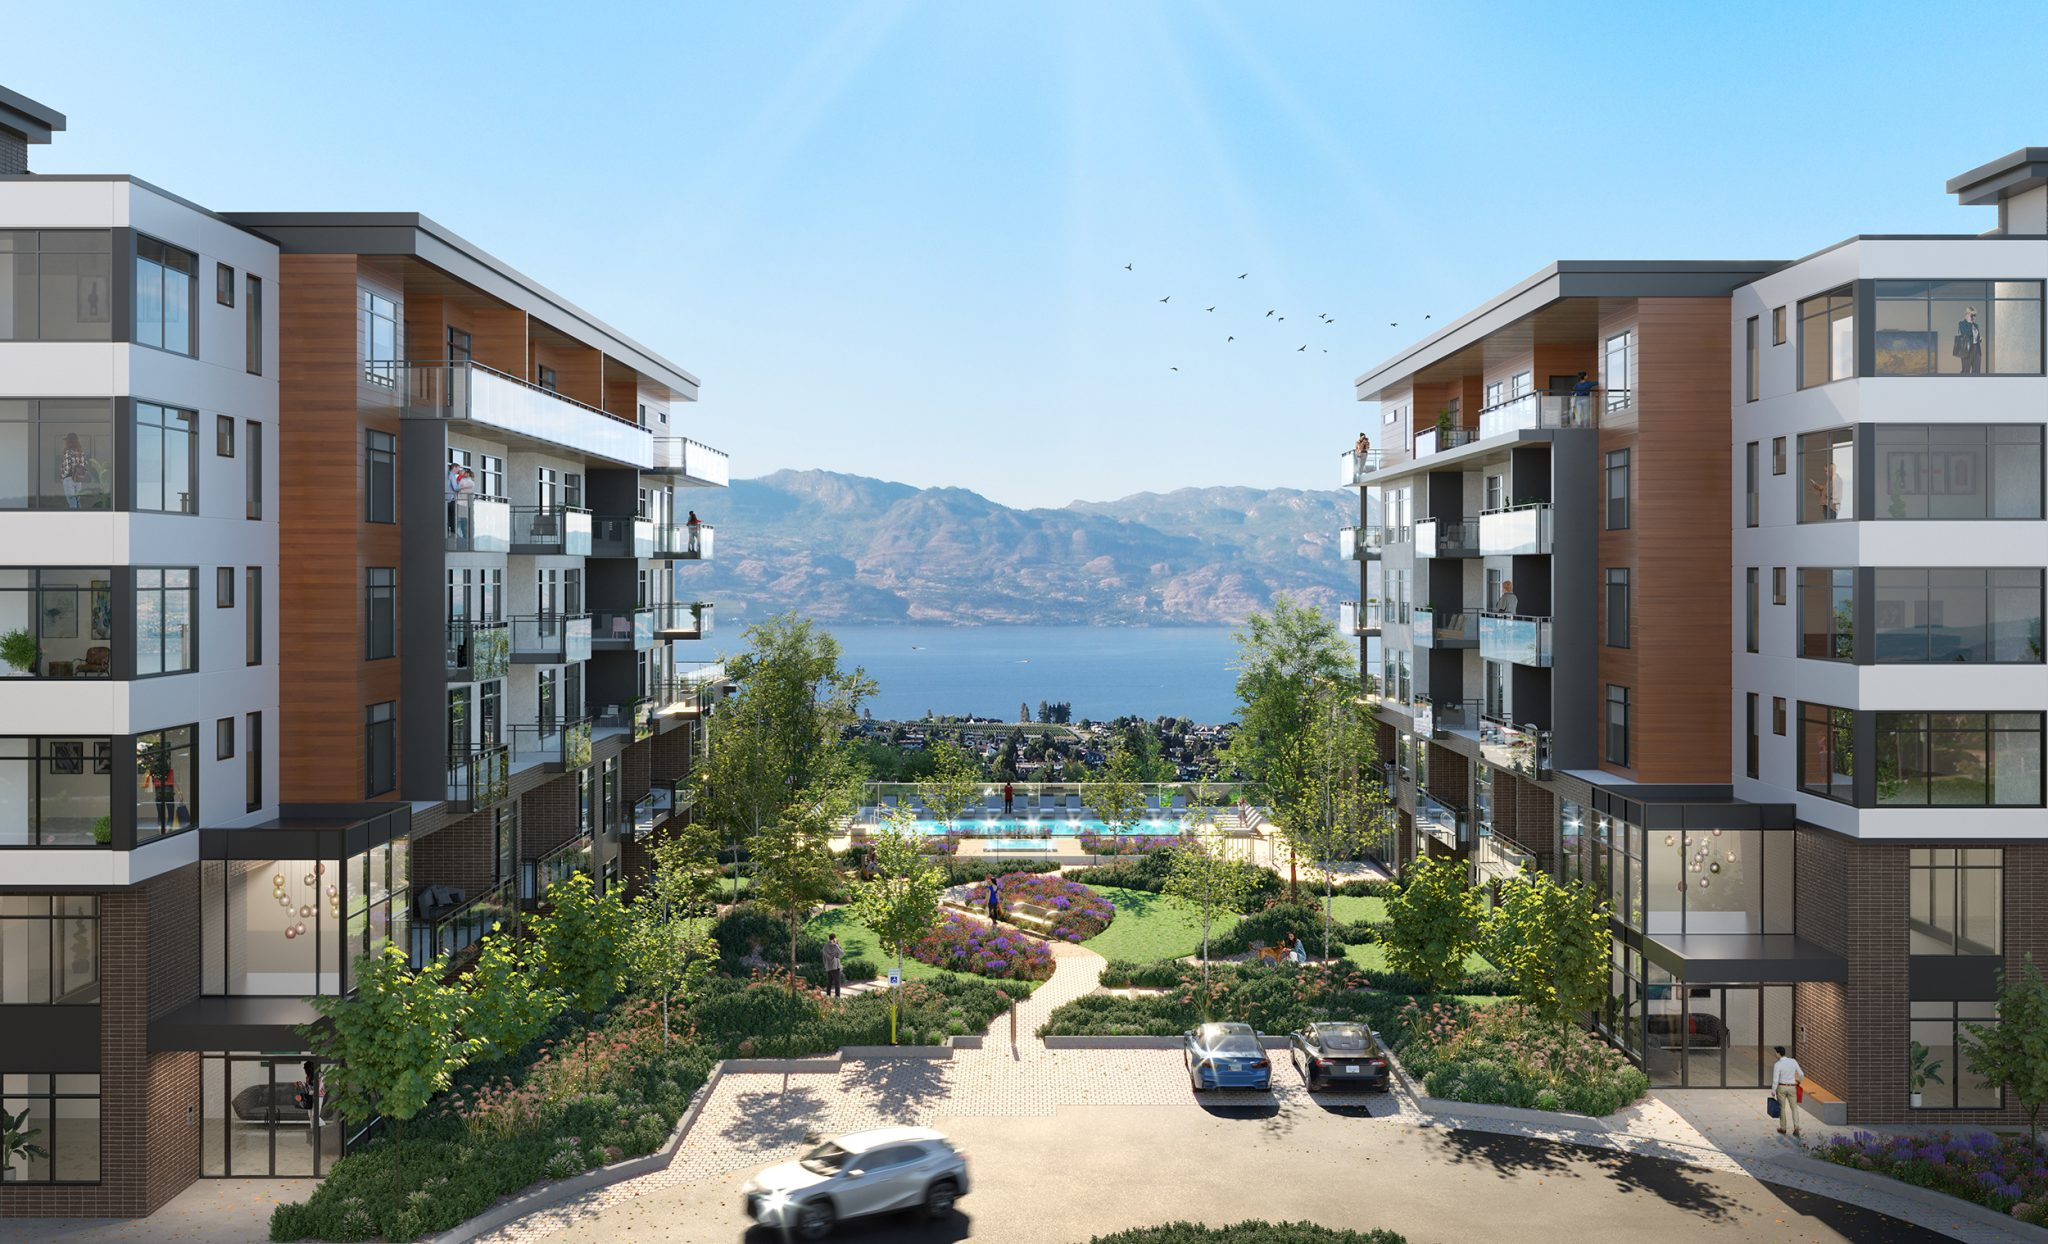 Lakeview Village Residences has become the new urban heart of this community, offering the quintessential Okanagan lifestyle mix of outdoor recreation, perfect location with great views, easy socializing and healthy living.